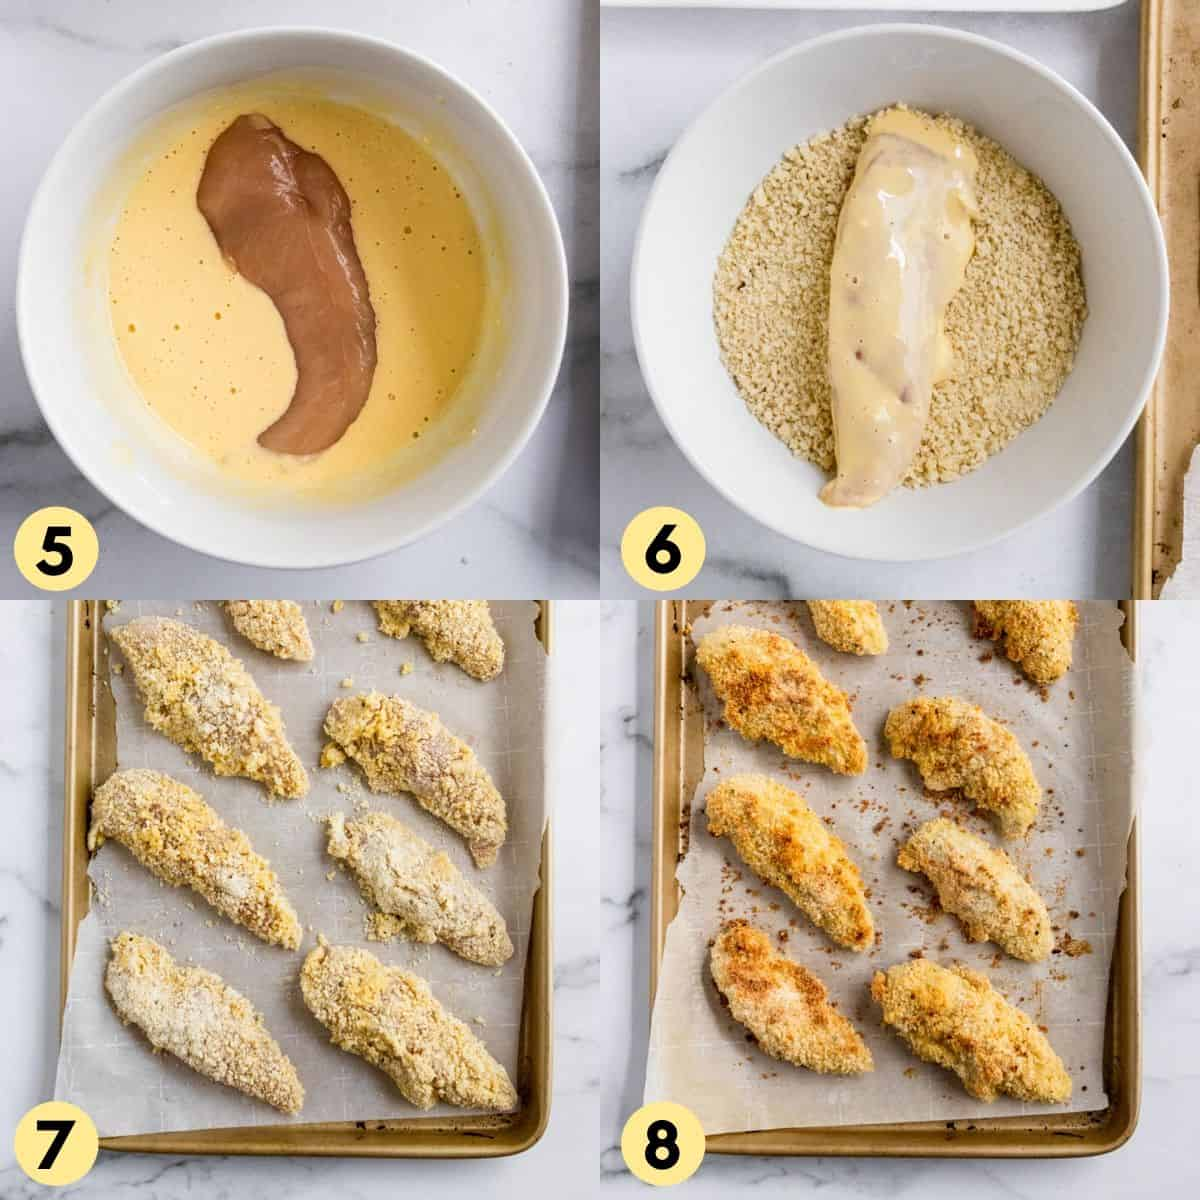 Chicken tenders in breading and egg mixture.